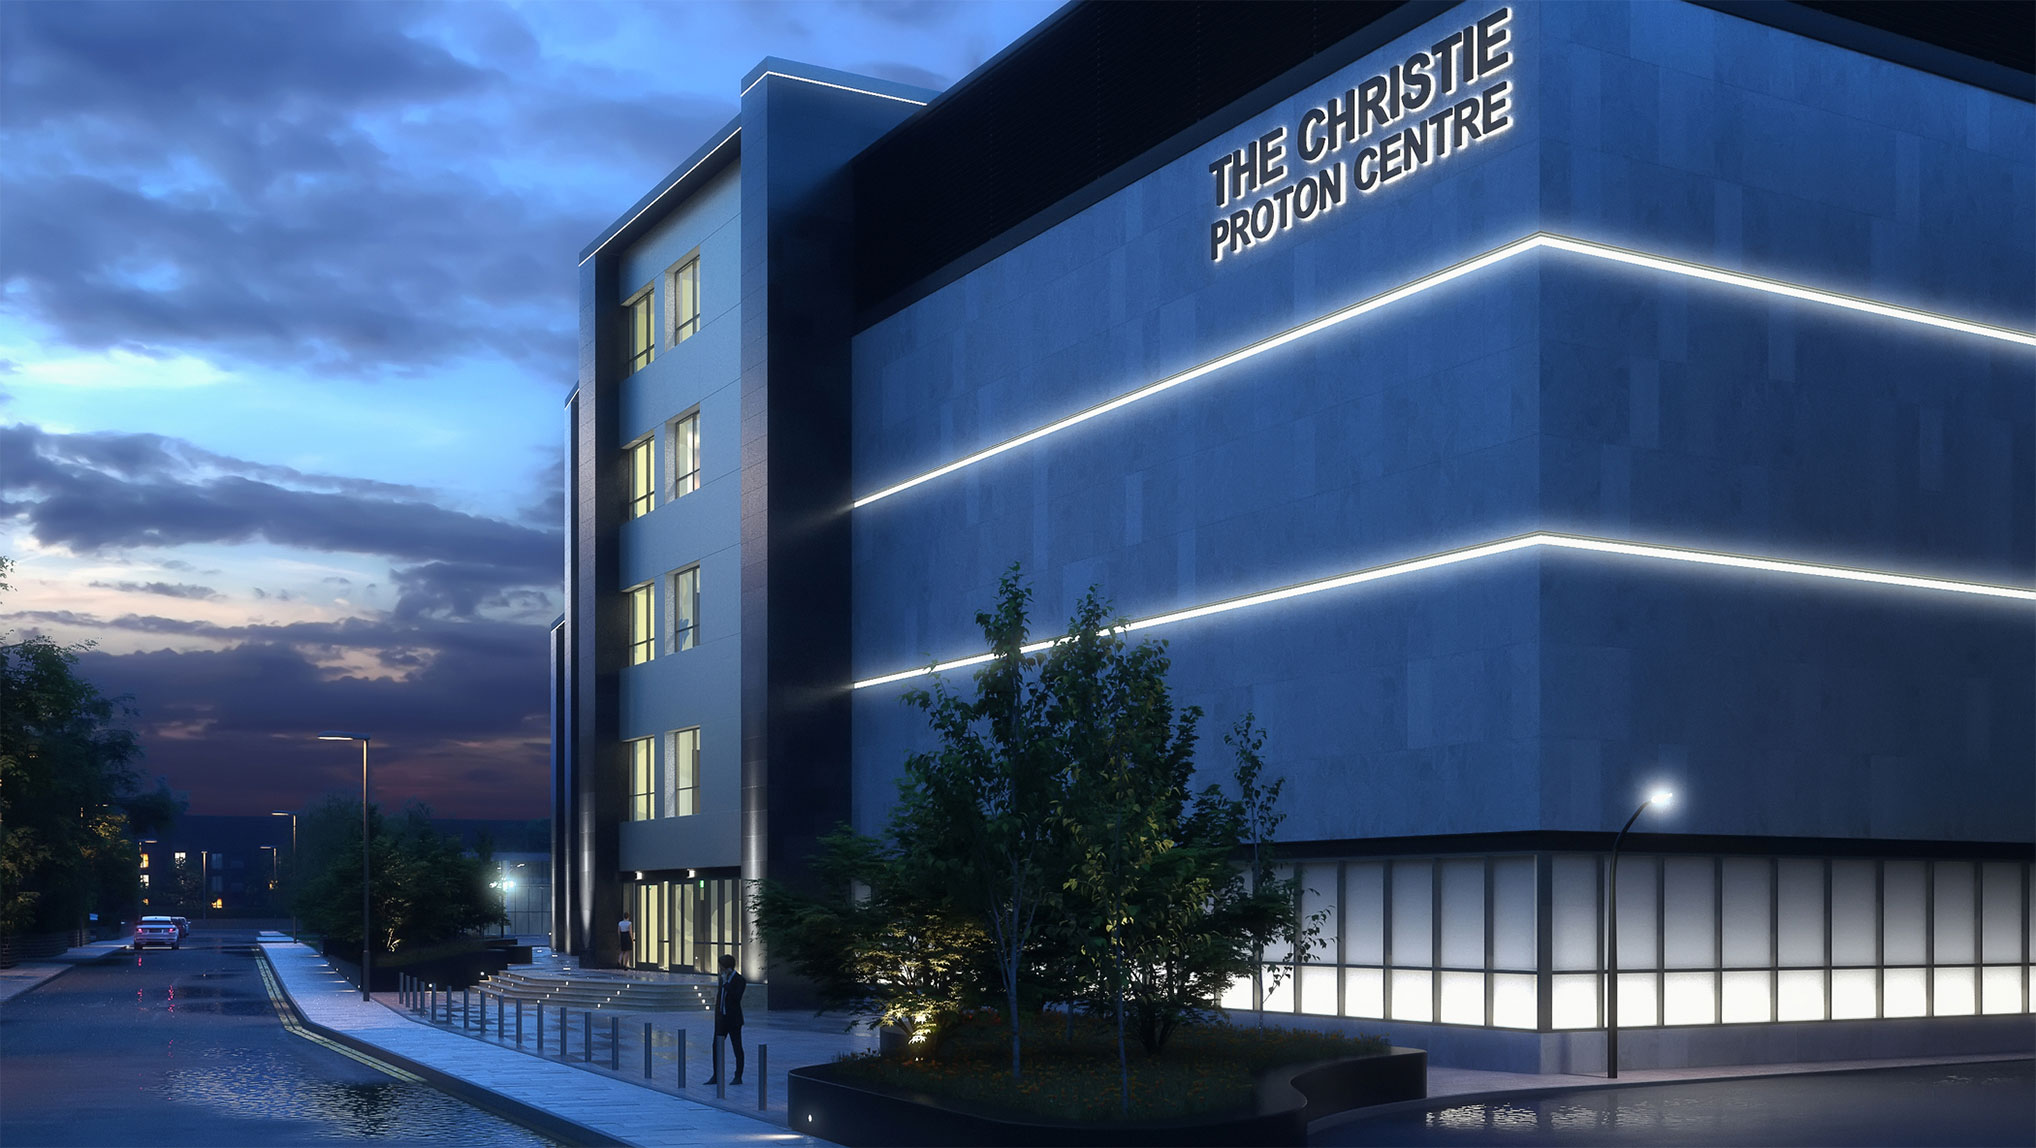 Christie NHS Foundation Trust Proton Beam Therapy Centre